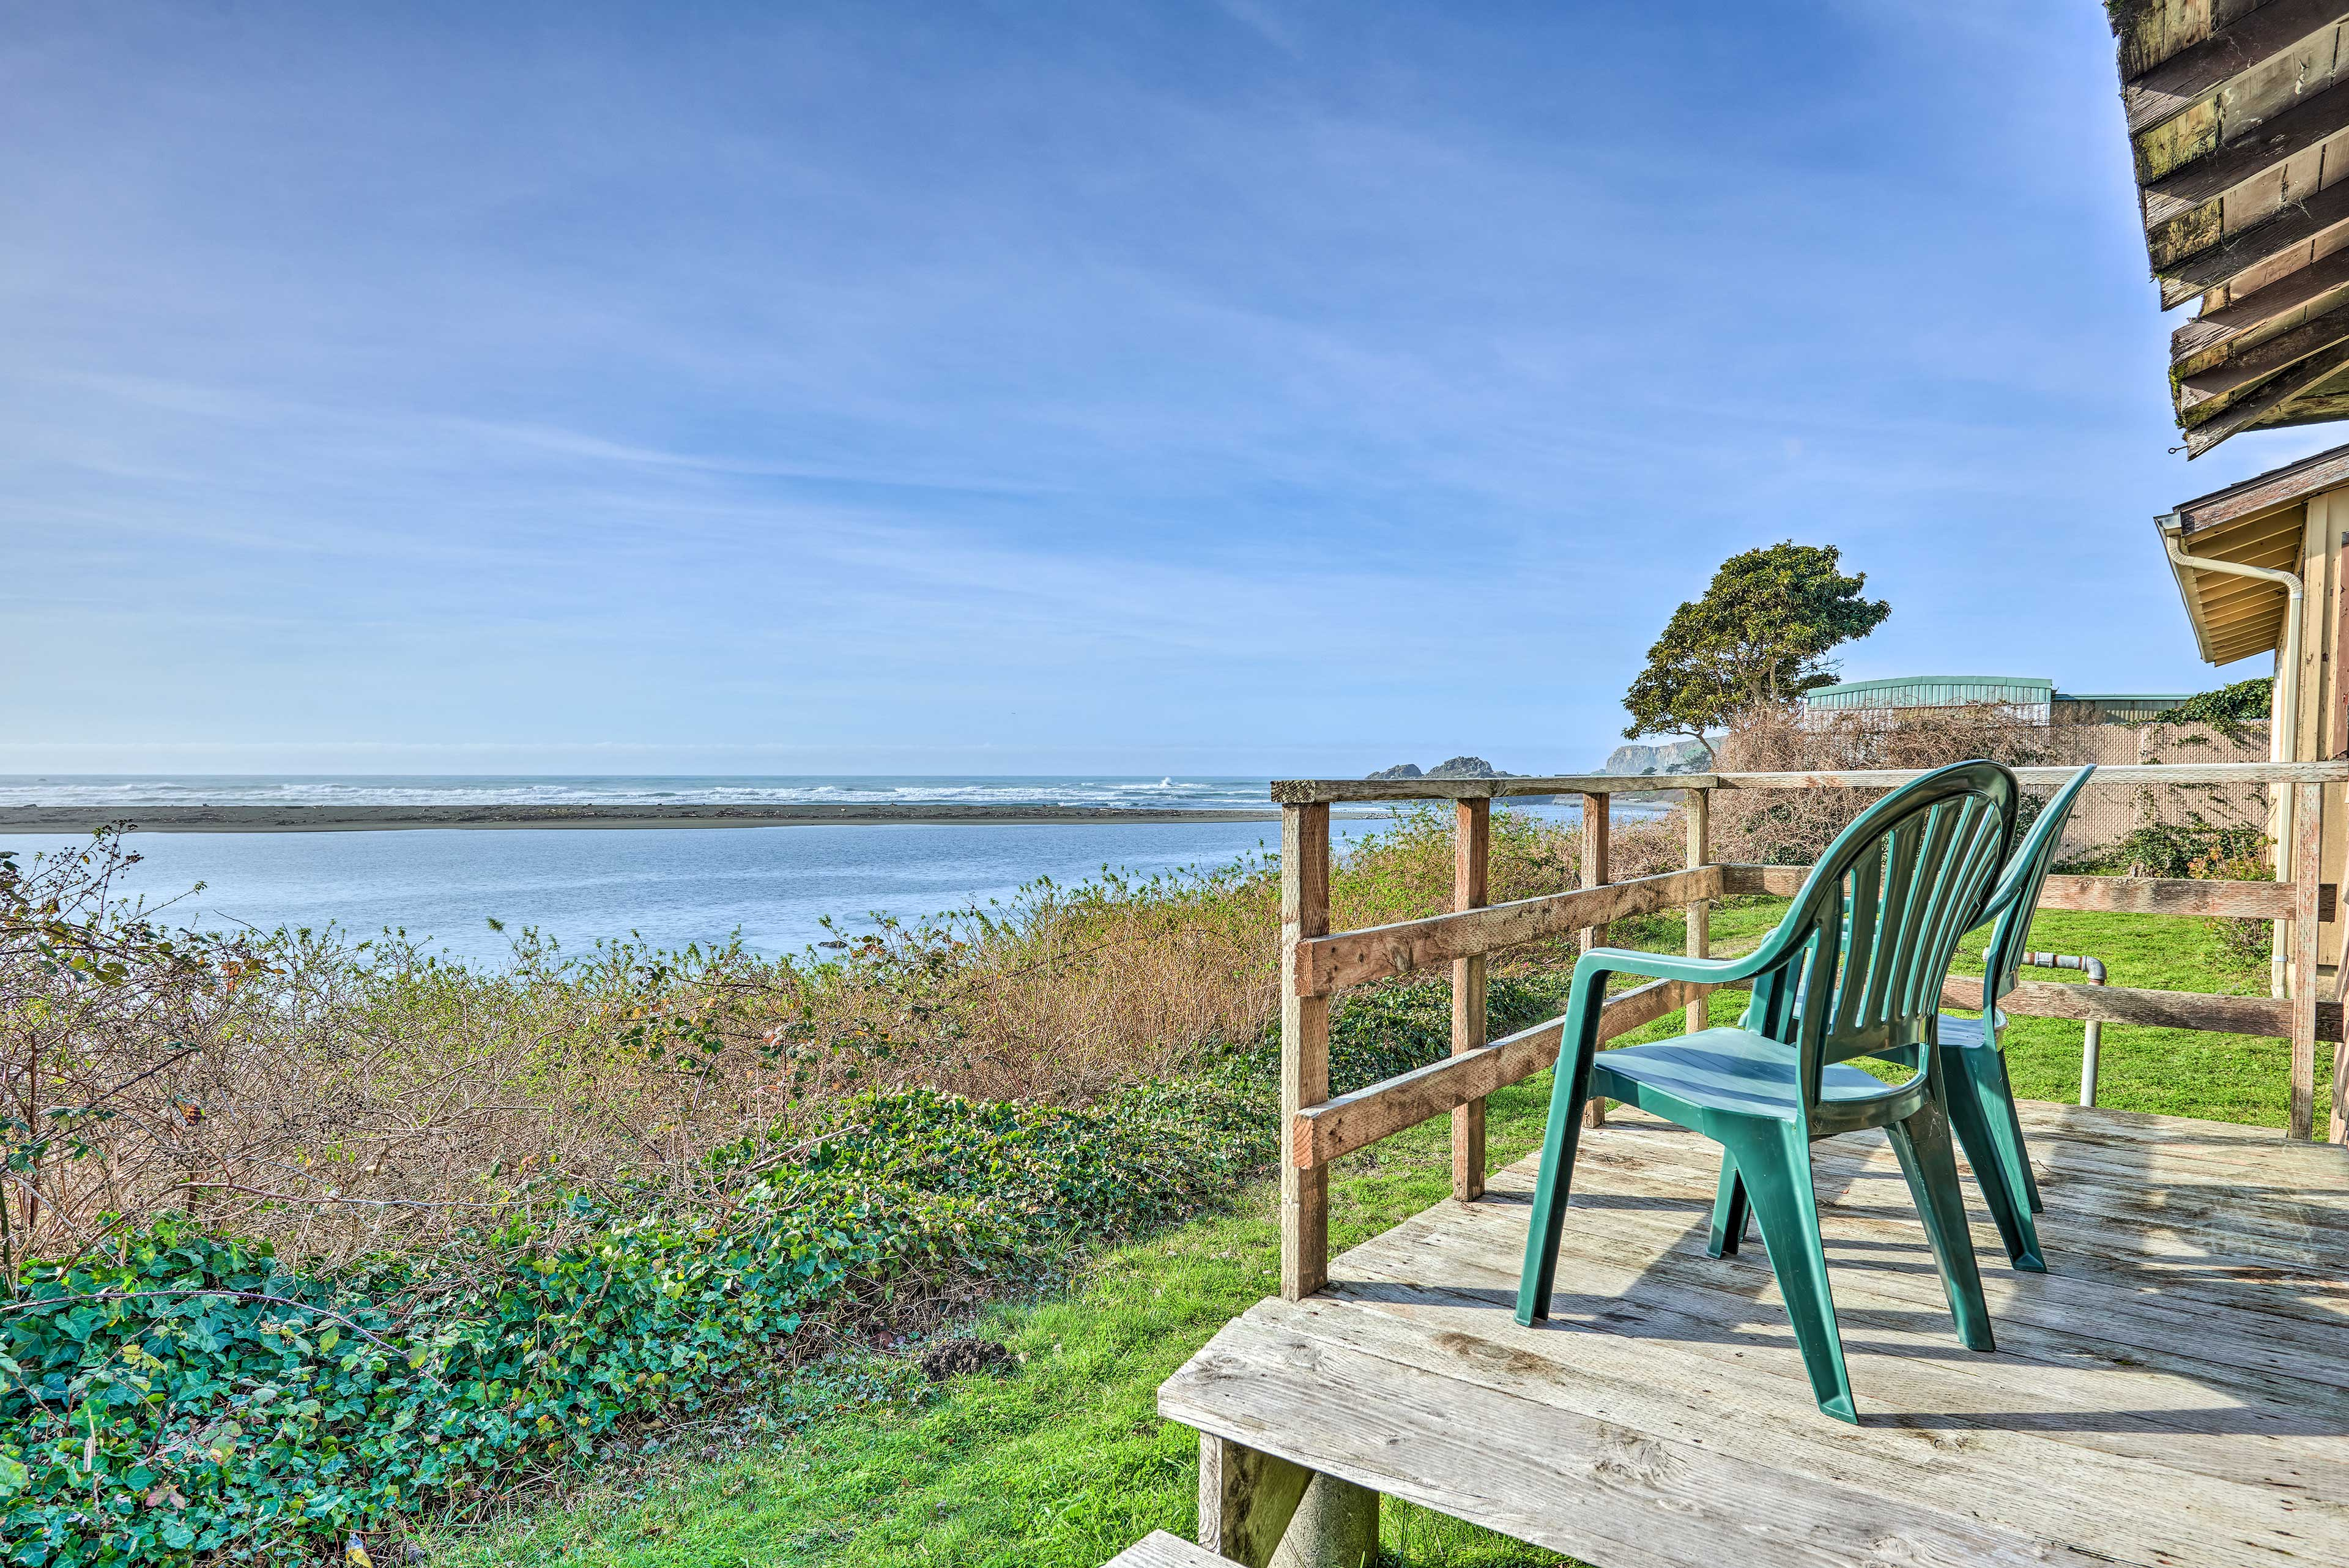 Enjoy the beauty of the Pacific coast at this 2-bedroom, 1-bathroom home.